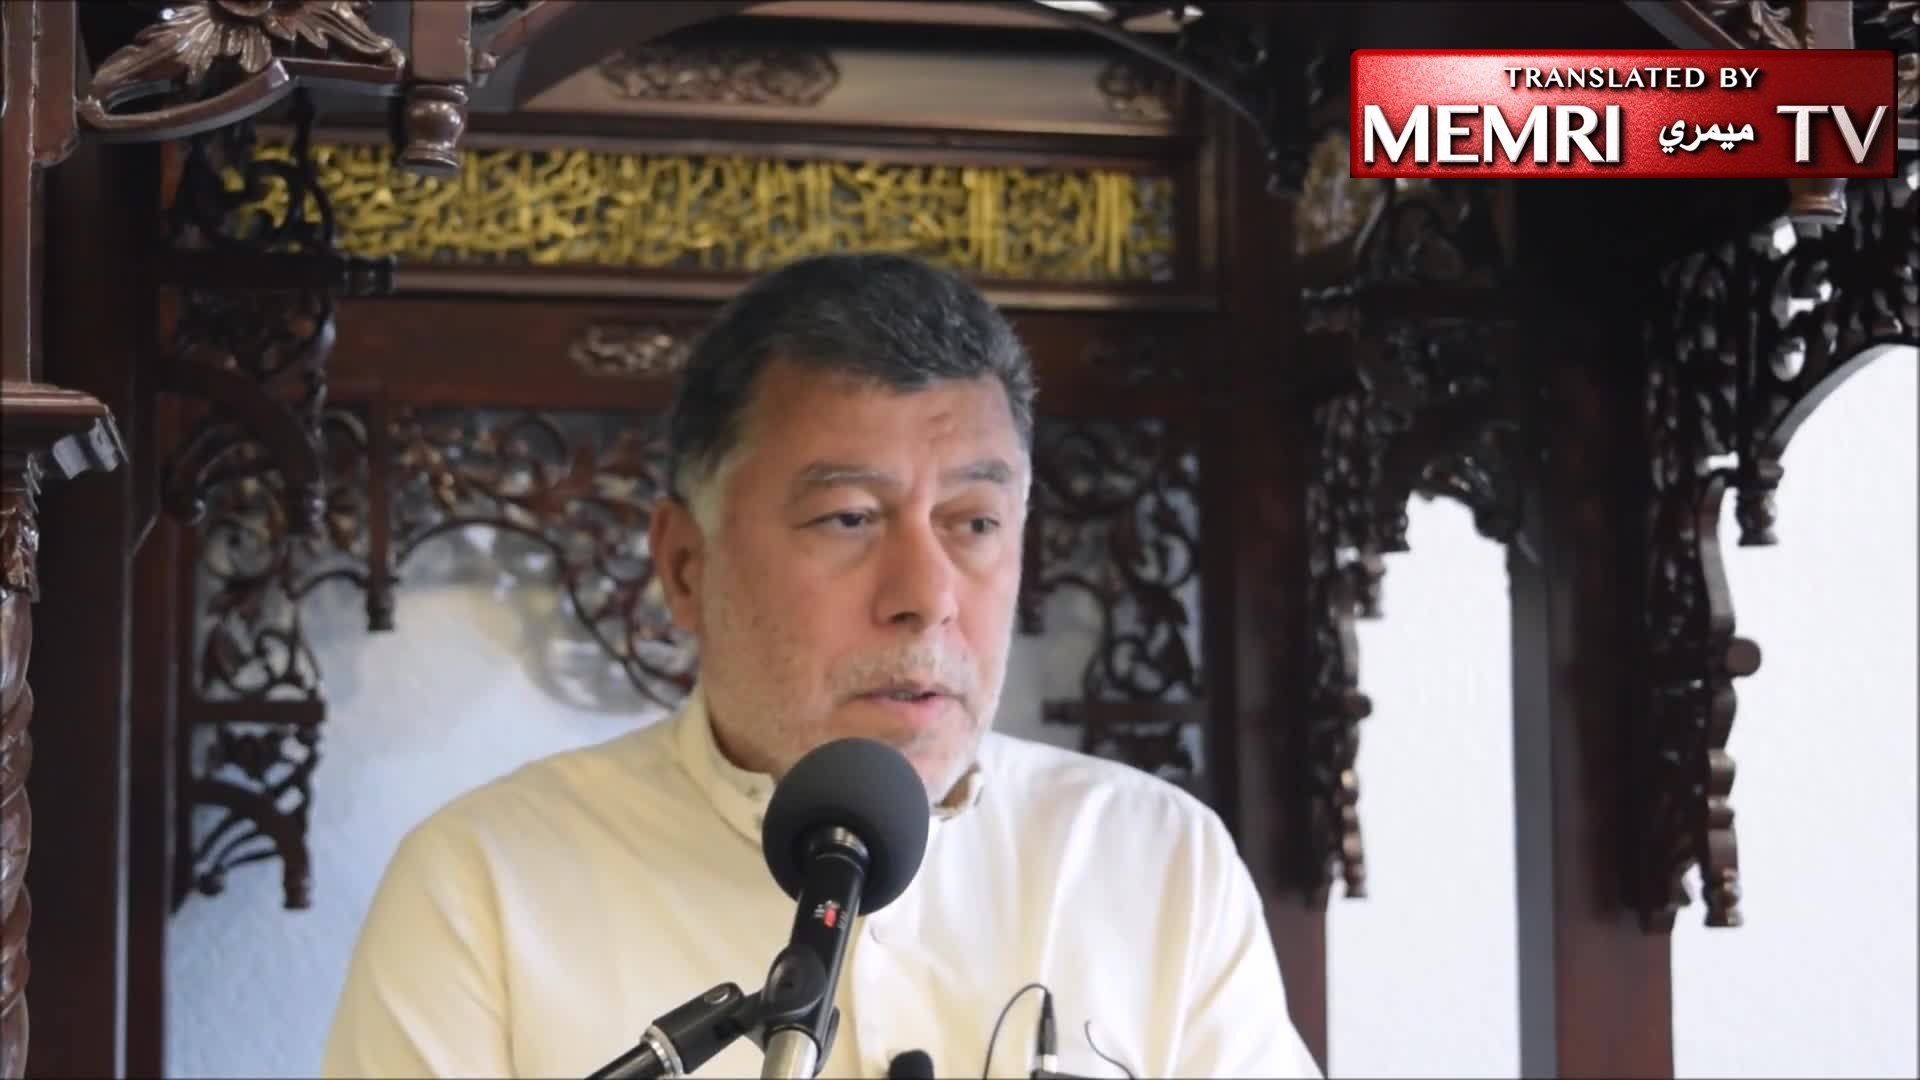 Florida Friday Sermon by Imam Hasan Sabri: Atheists Are Worms in the Body of Muslims, Germs Causing Disease to the Nation